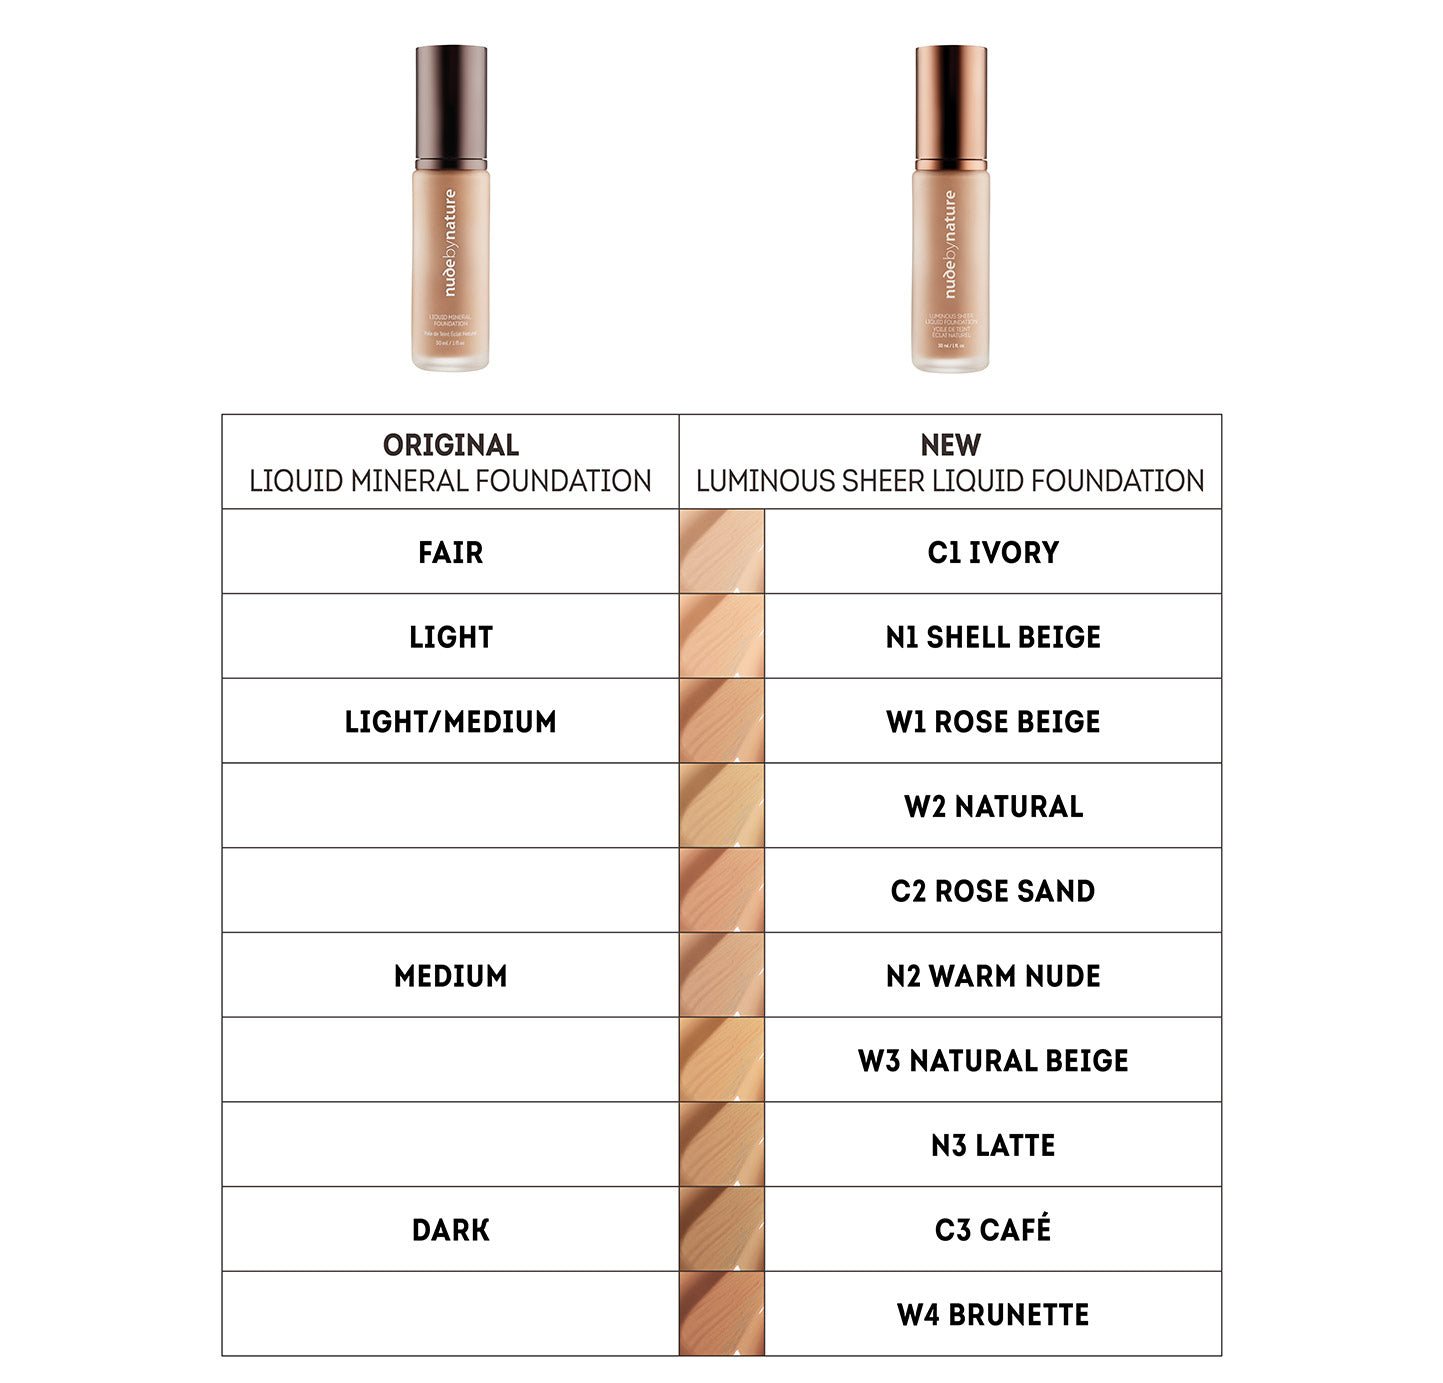 Luminous Sheer Liquid Foundation Shade Table